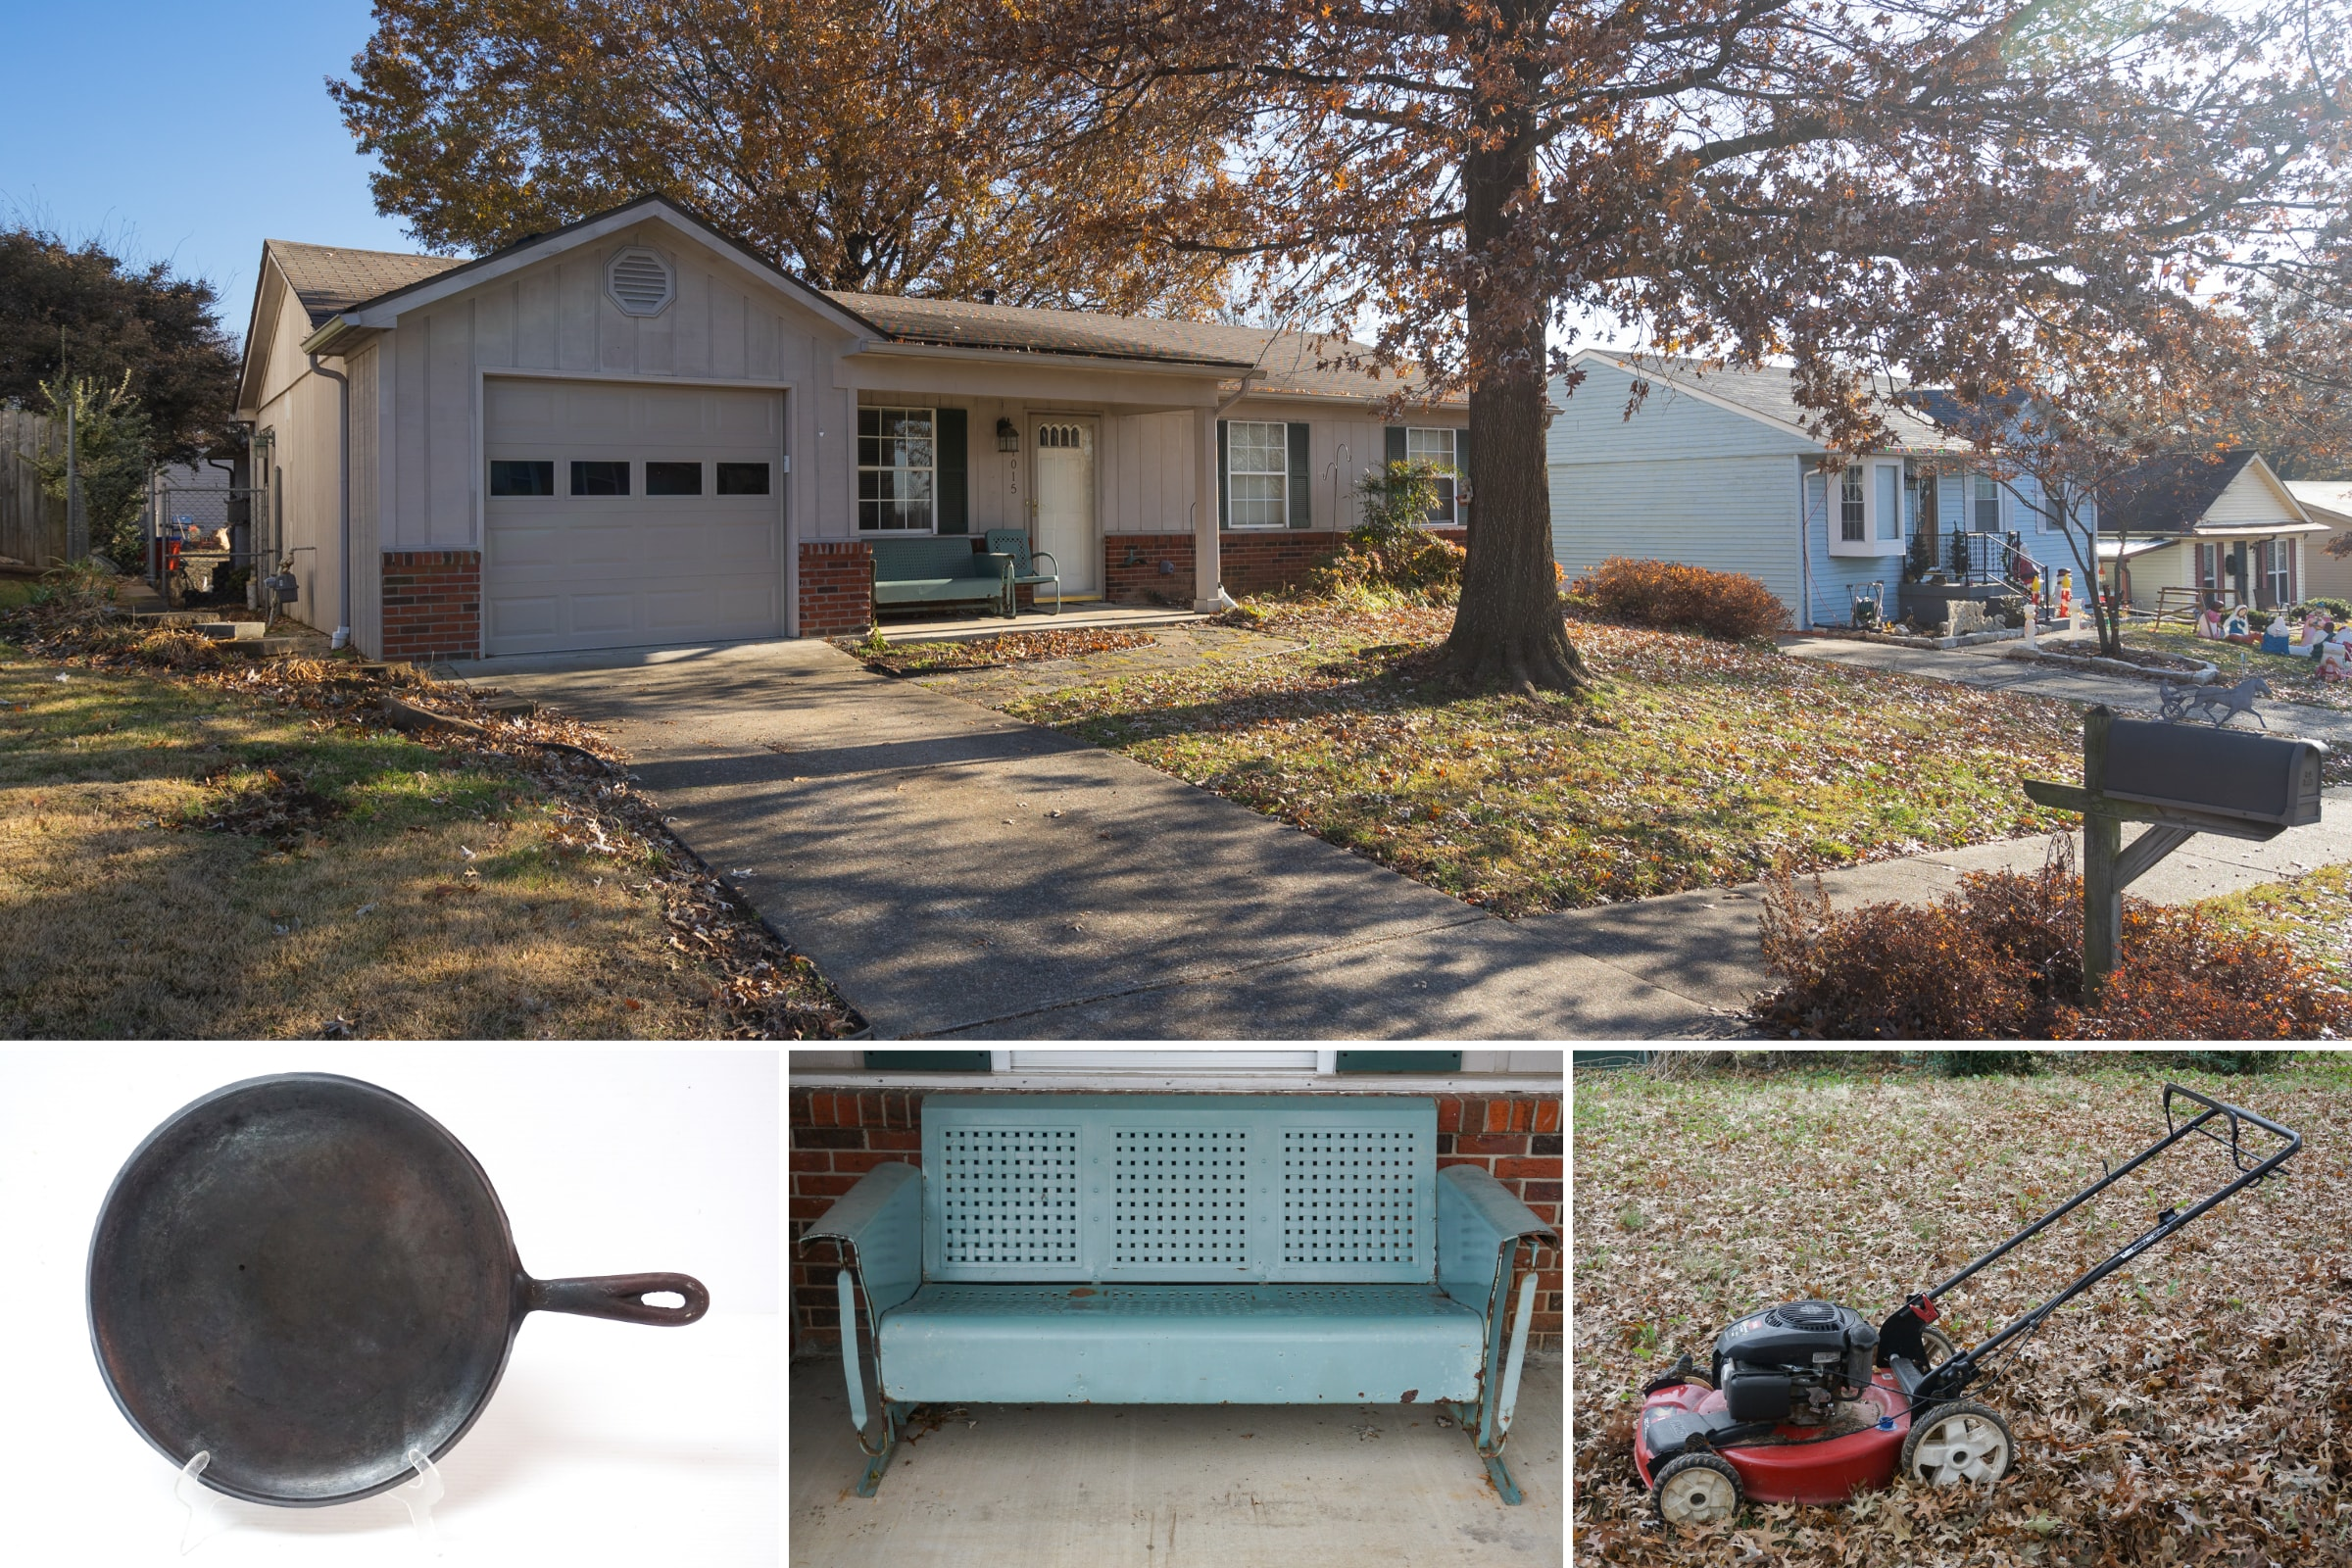 Ranch Home & Contents Auction